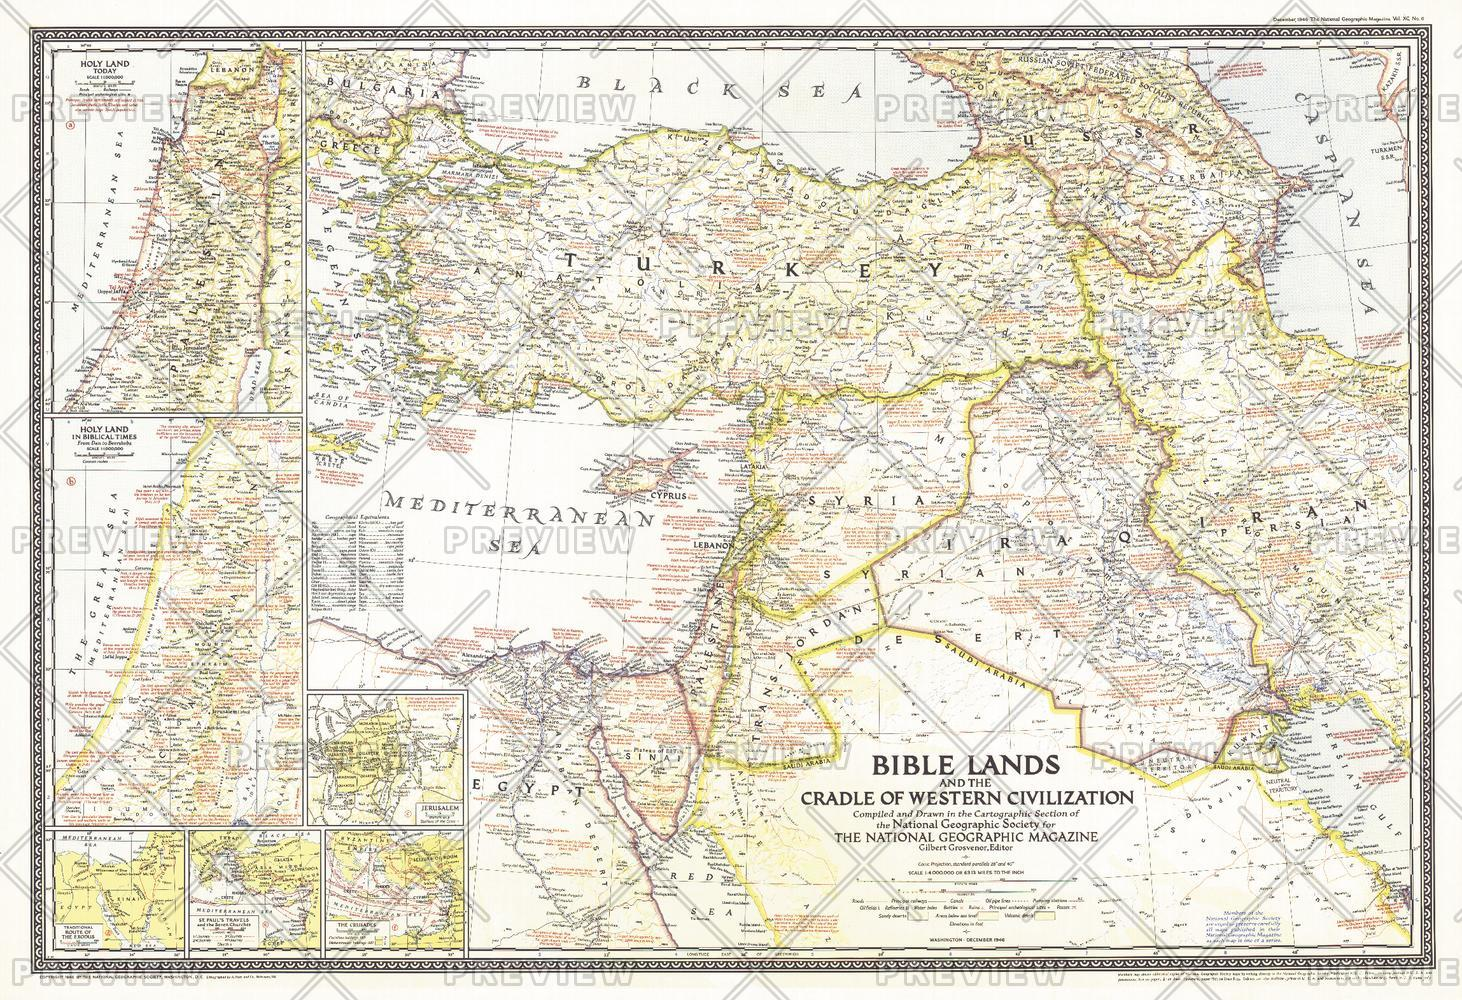 Bible Lands, and the Cradle of Western Civilization  -  Published 1946